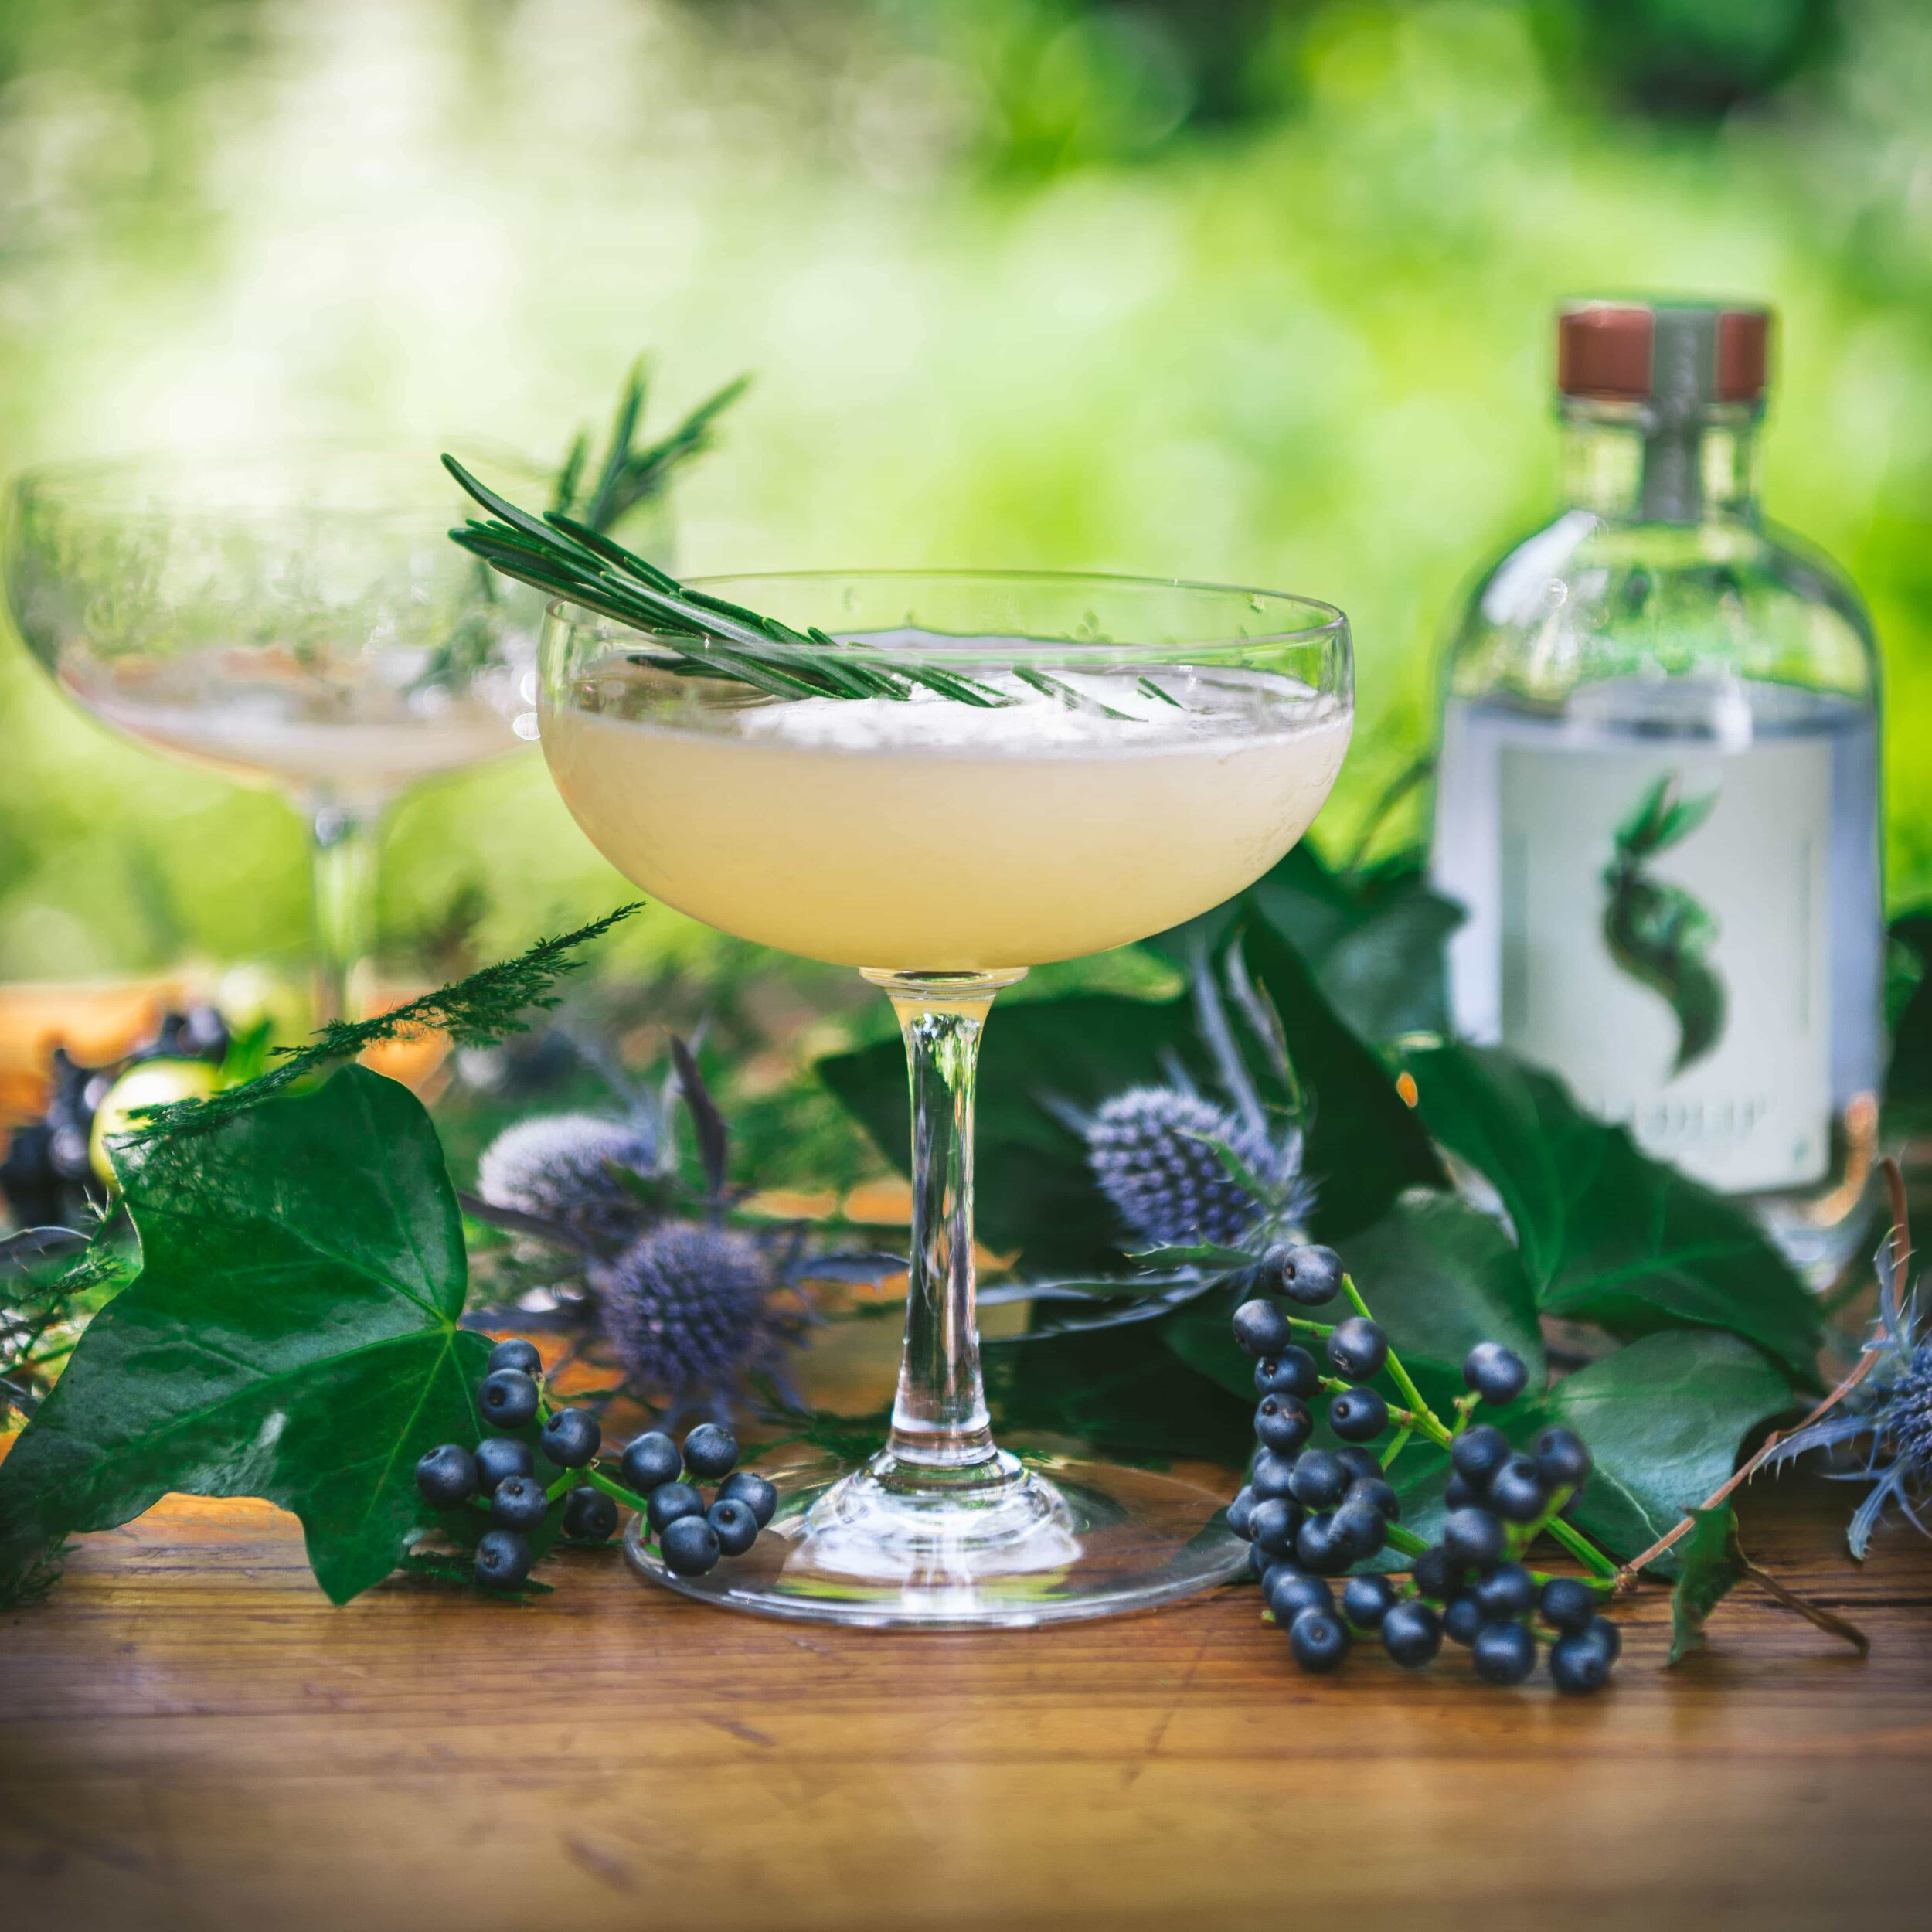 """Seedlip Garden Sour - A clever Brit has turned his family's 300-year-old English pea farm into an entrepreneurial 21st century agricultural innovation company where botany, alchemy, and a bit of ingenious branding strategy have successfully distilled the world's first non-alcoholic spirits. Setting about to solve the riddle of """"what to drink when you're not drinking,"""" Ben Branson grows, blends, and bottles alcohol free, sugar free, calorie free, and allergen free distilled spirits into grown up zero proof, perfectly balanced cocktail blends for any non-drinker. The Garden Sour is made with the Garden 108 blend, a reference to """"the average number of days it takes to sow, grow, and hand-harvest"""" the peas growing on his farm three hours north of London. This is a pucker-up recipe that is every bit as wonderful as creations made by the world's best mixologists. Served at NoMad in New York City, one of the world's best bars, should be proof enough that it a cocktail with serious credibility."""